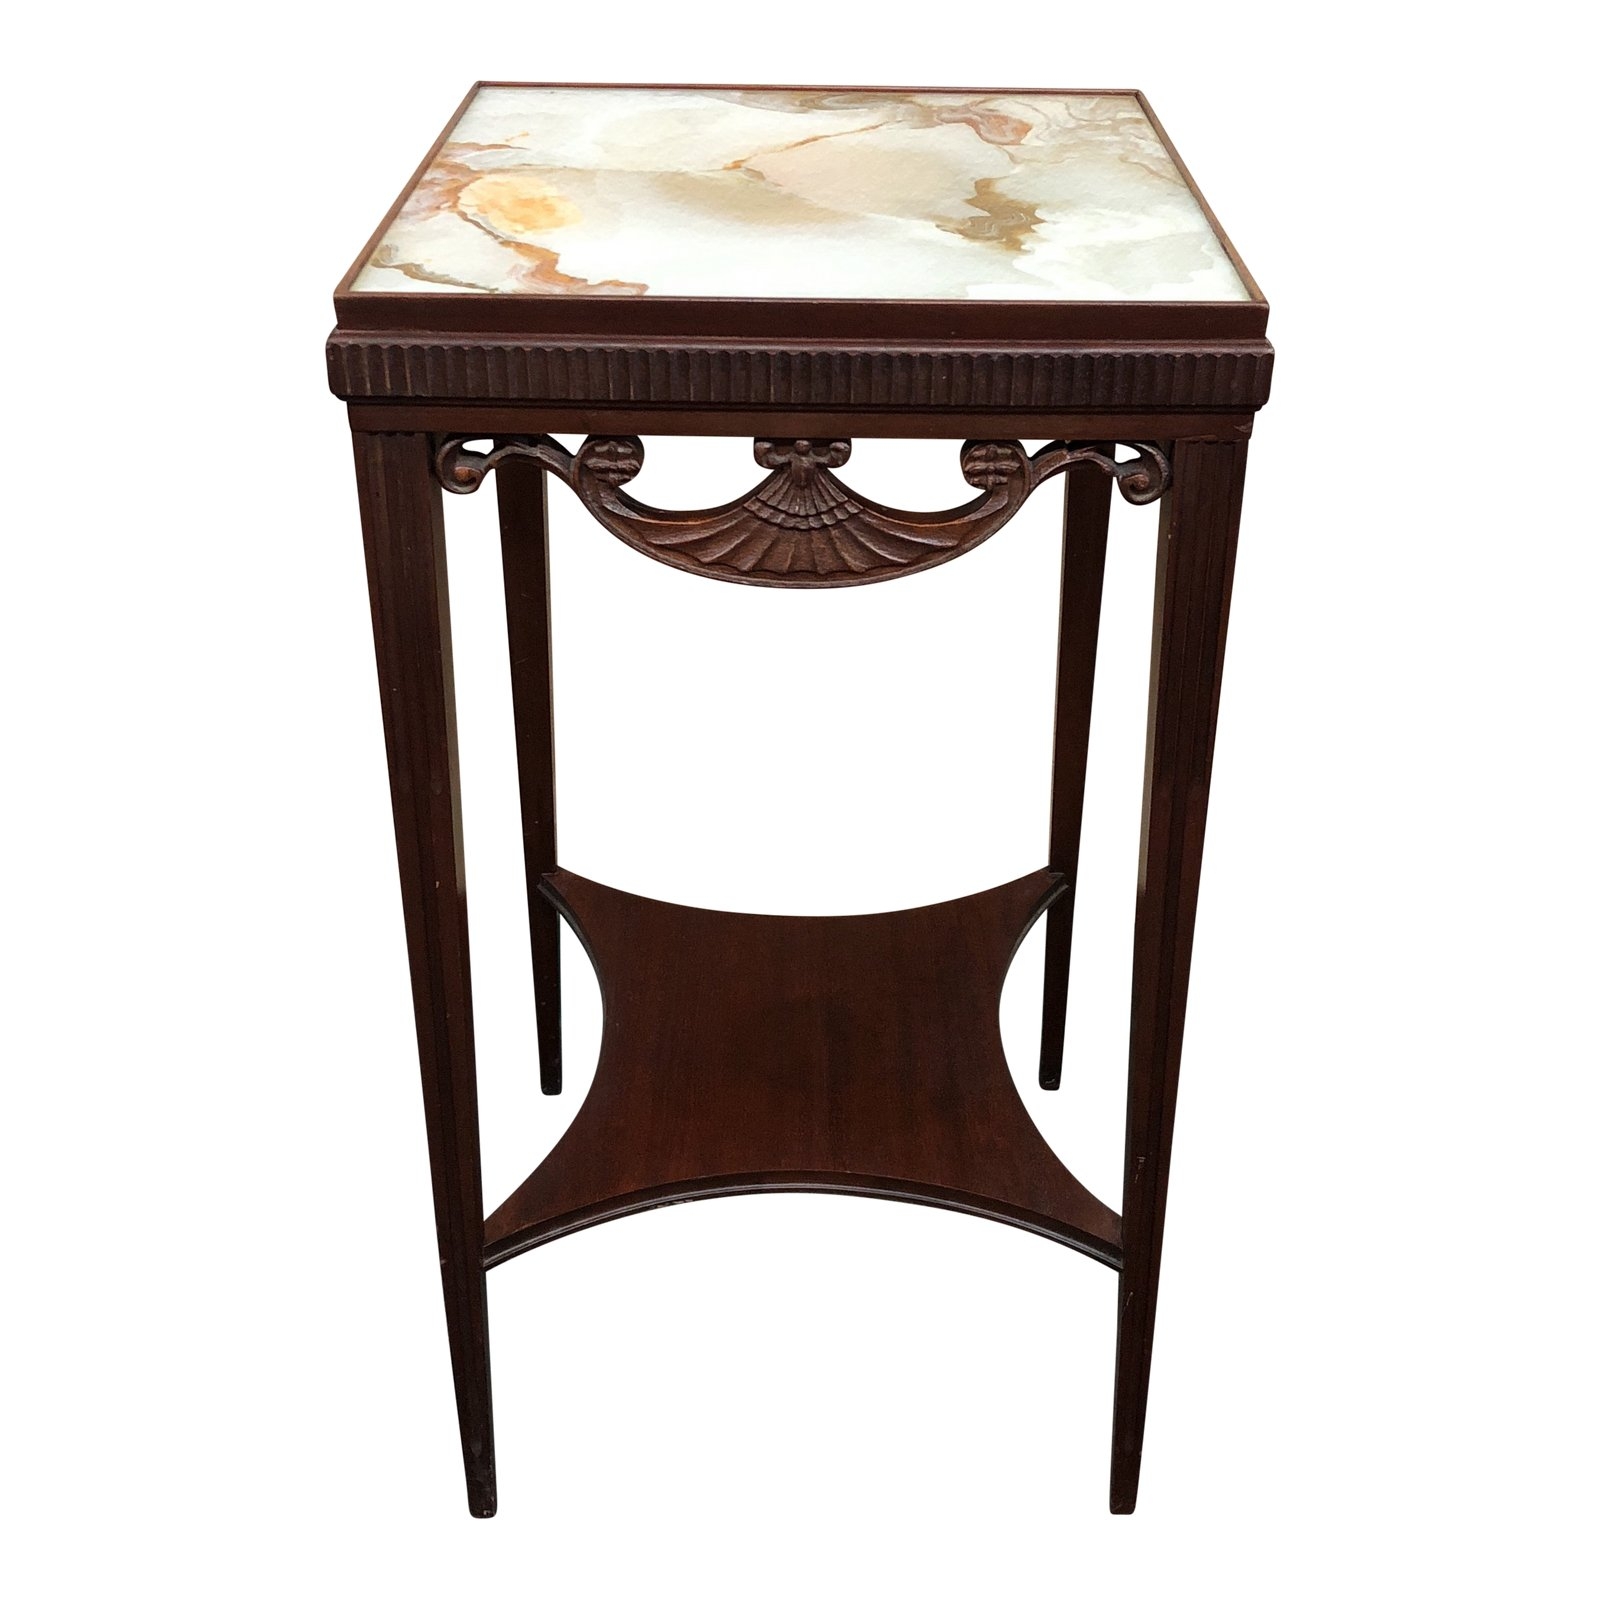 antique faux marble painted glass top accent table chairish wood covers for outdoor tables unique cabinets copper side mirrored end low living room nest grey rustic round small